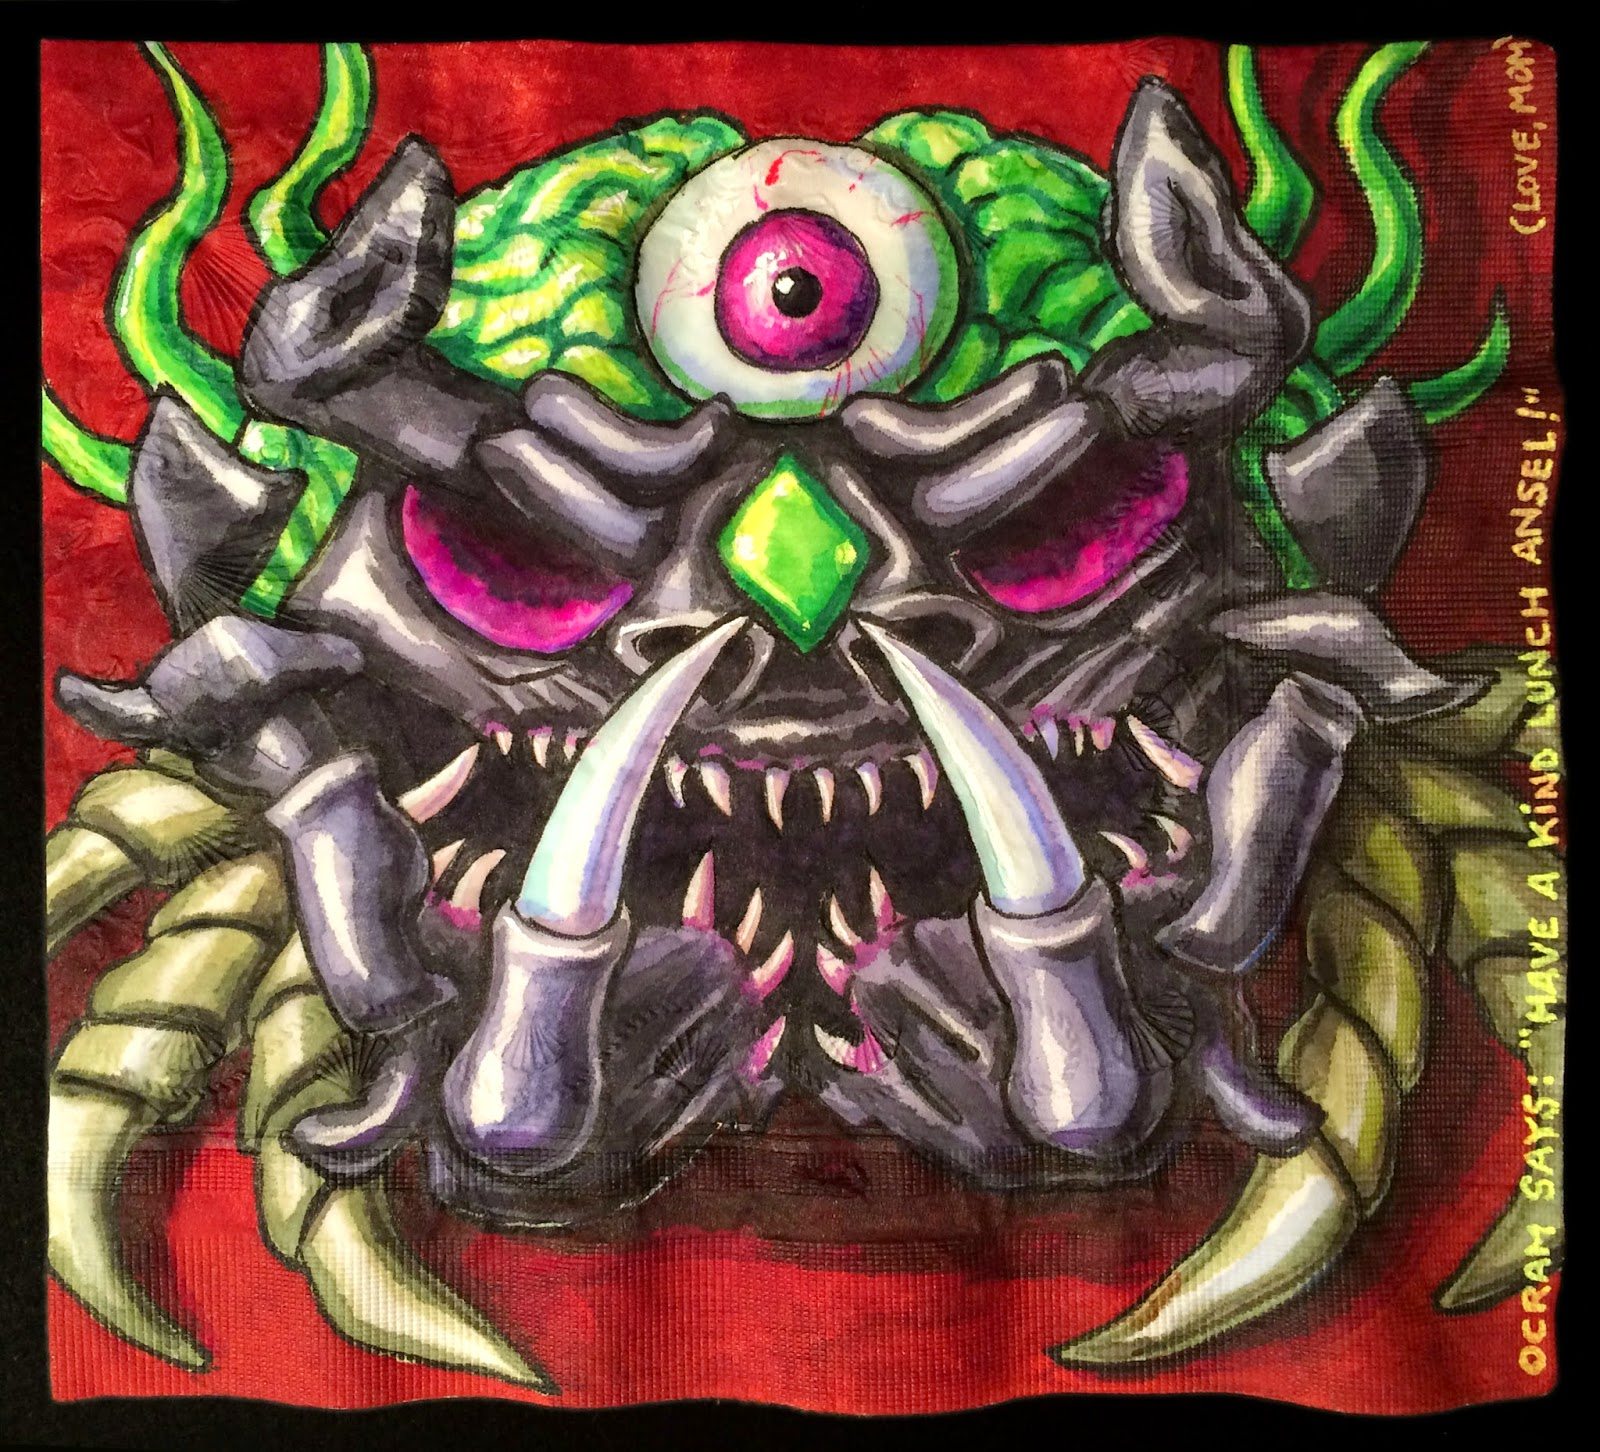 Daily Napkins: Terraria Boss Ocram, Second Form